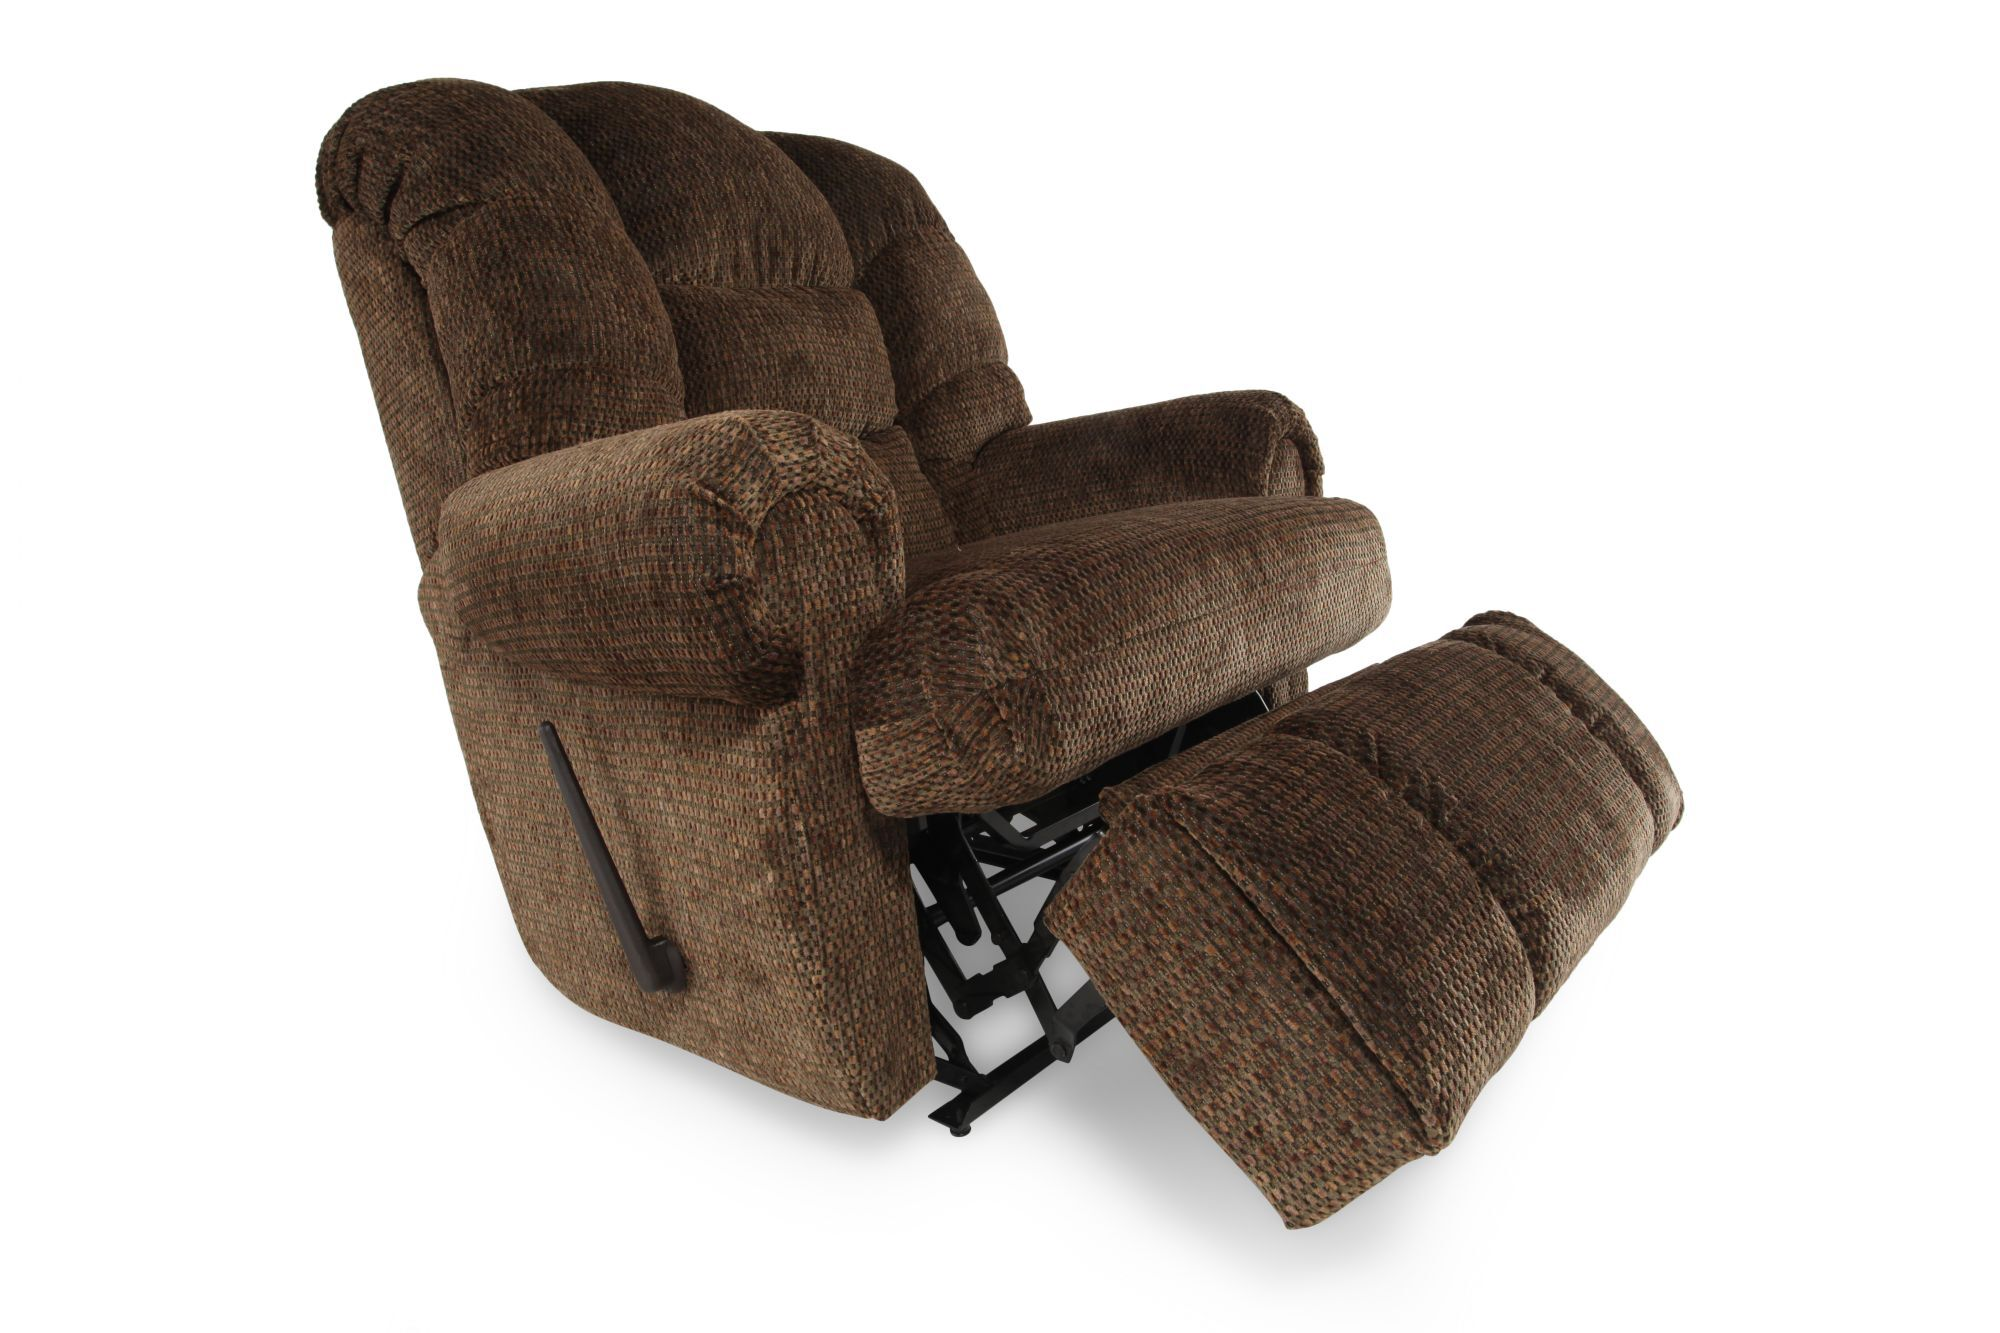 Lane Stallion Parsley Comfort King Recliner  sc 1 st  Mathis Brothers & Lane Stallion Parsley Comfort King Recliner | Mathis Brothers ... islam-shia.org